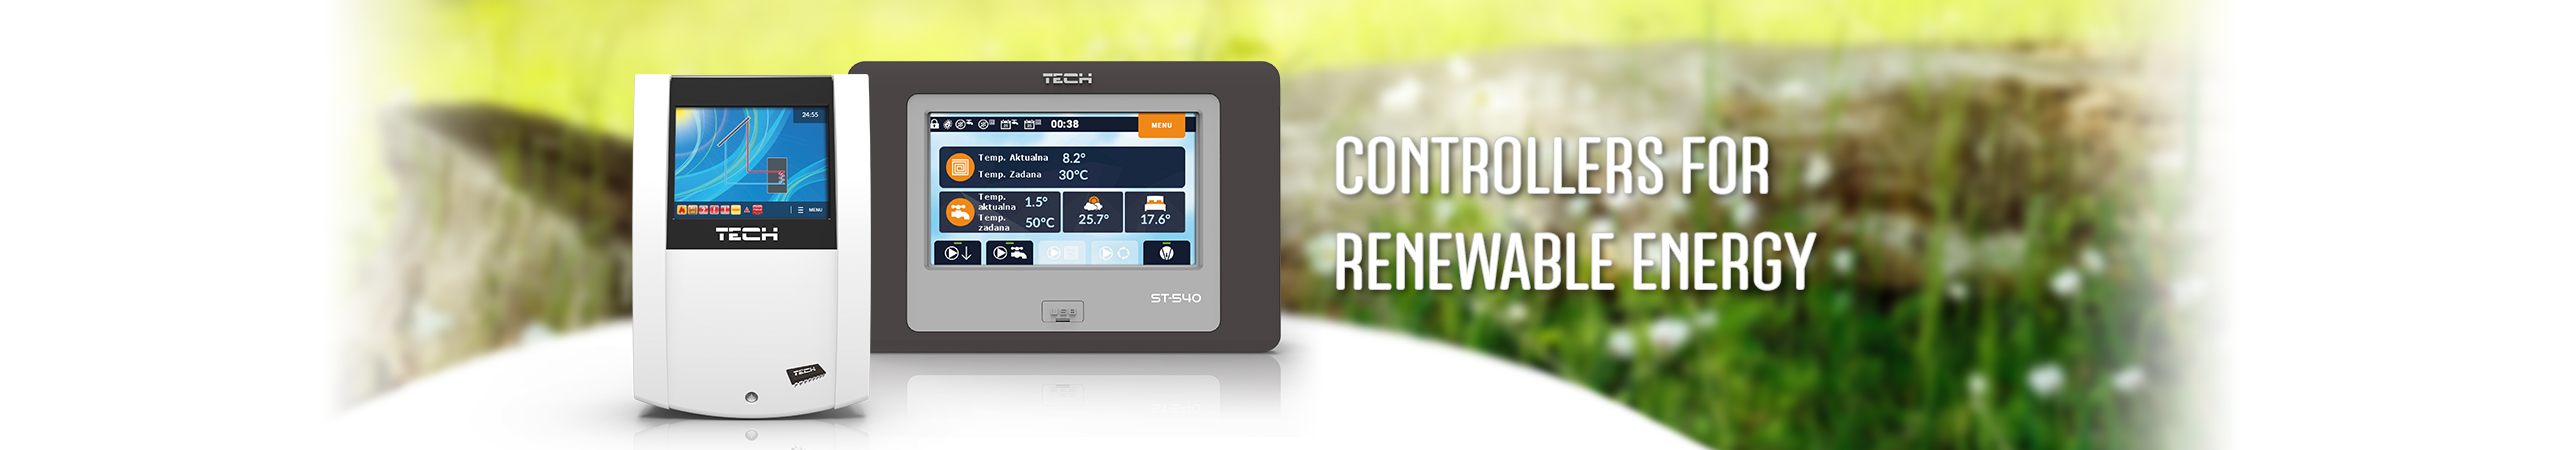 Controllers for renewable energy - TECH Sterowniki